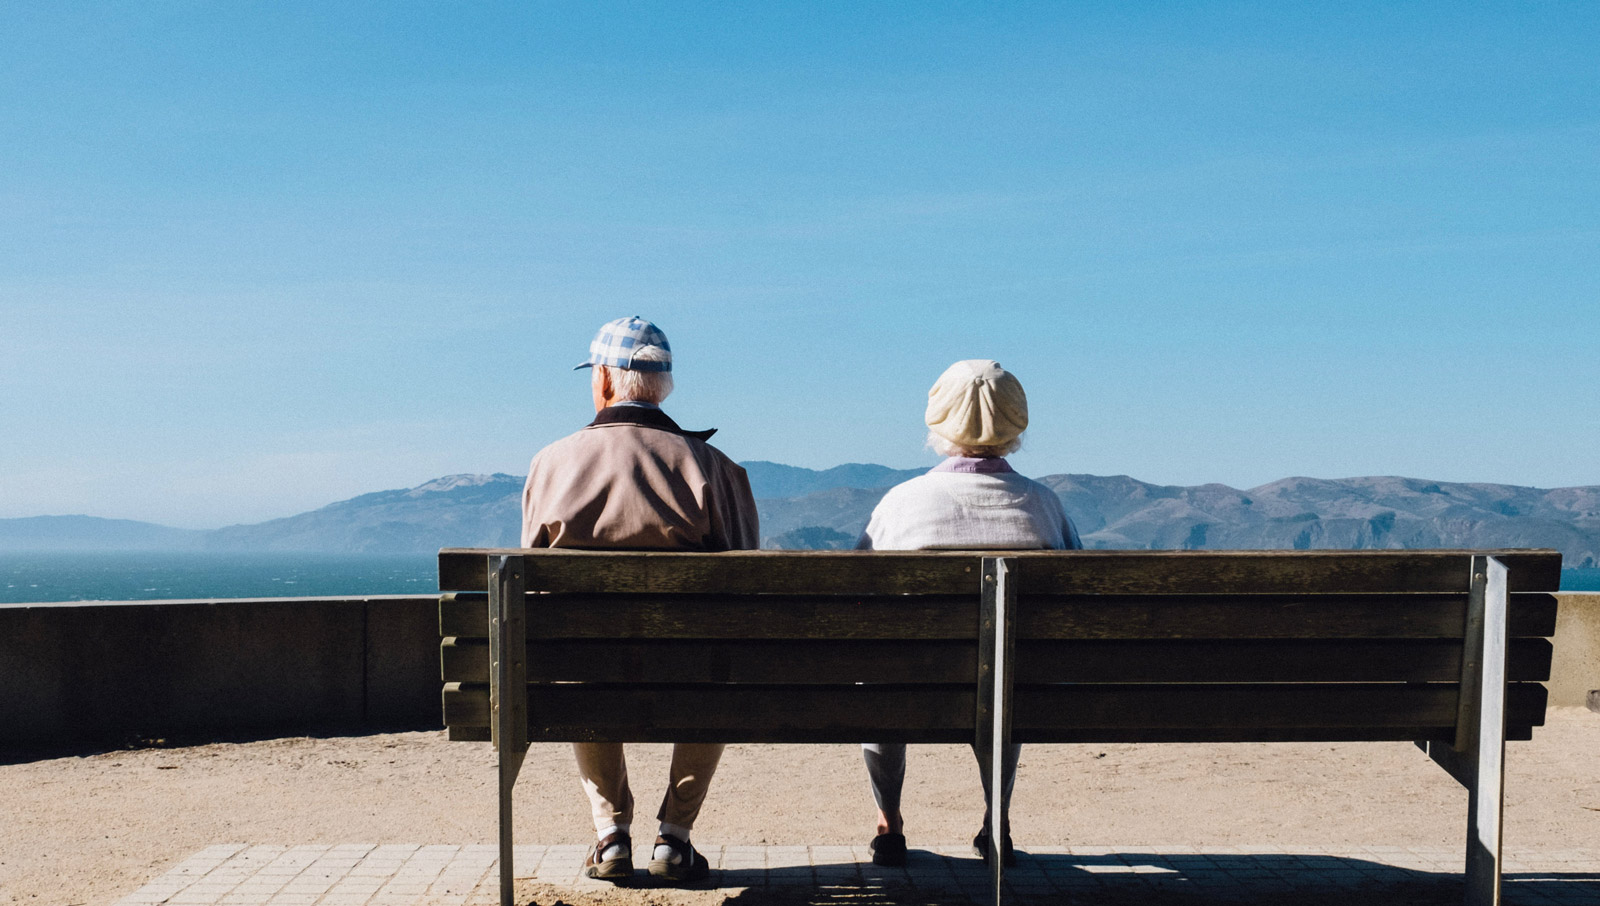 two seniors sitting on a bench looking out at scenery